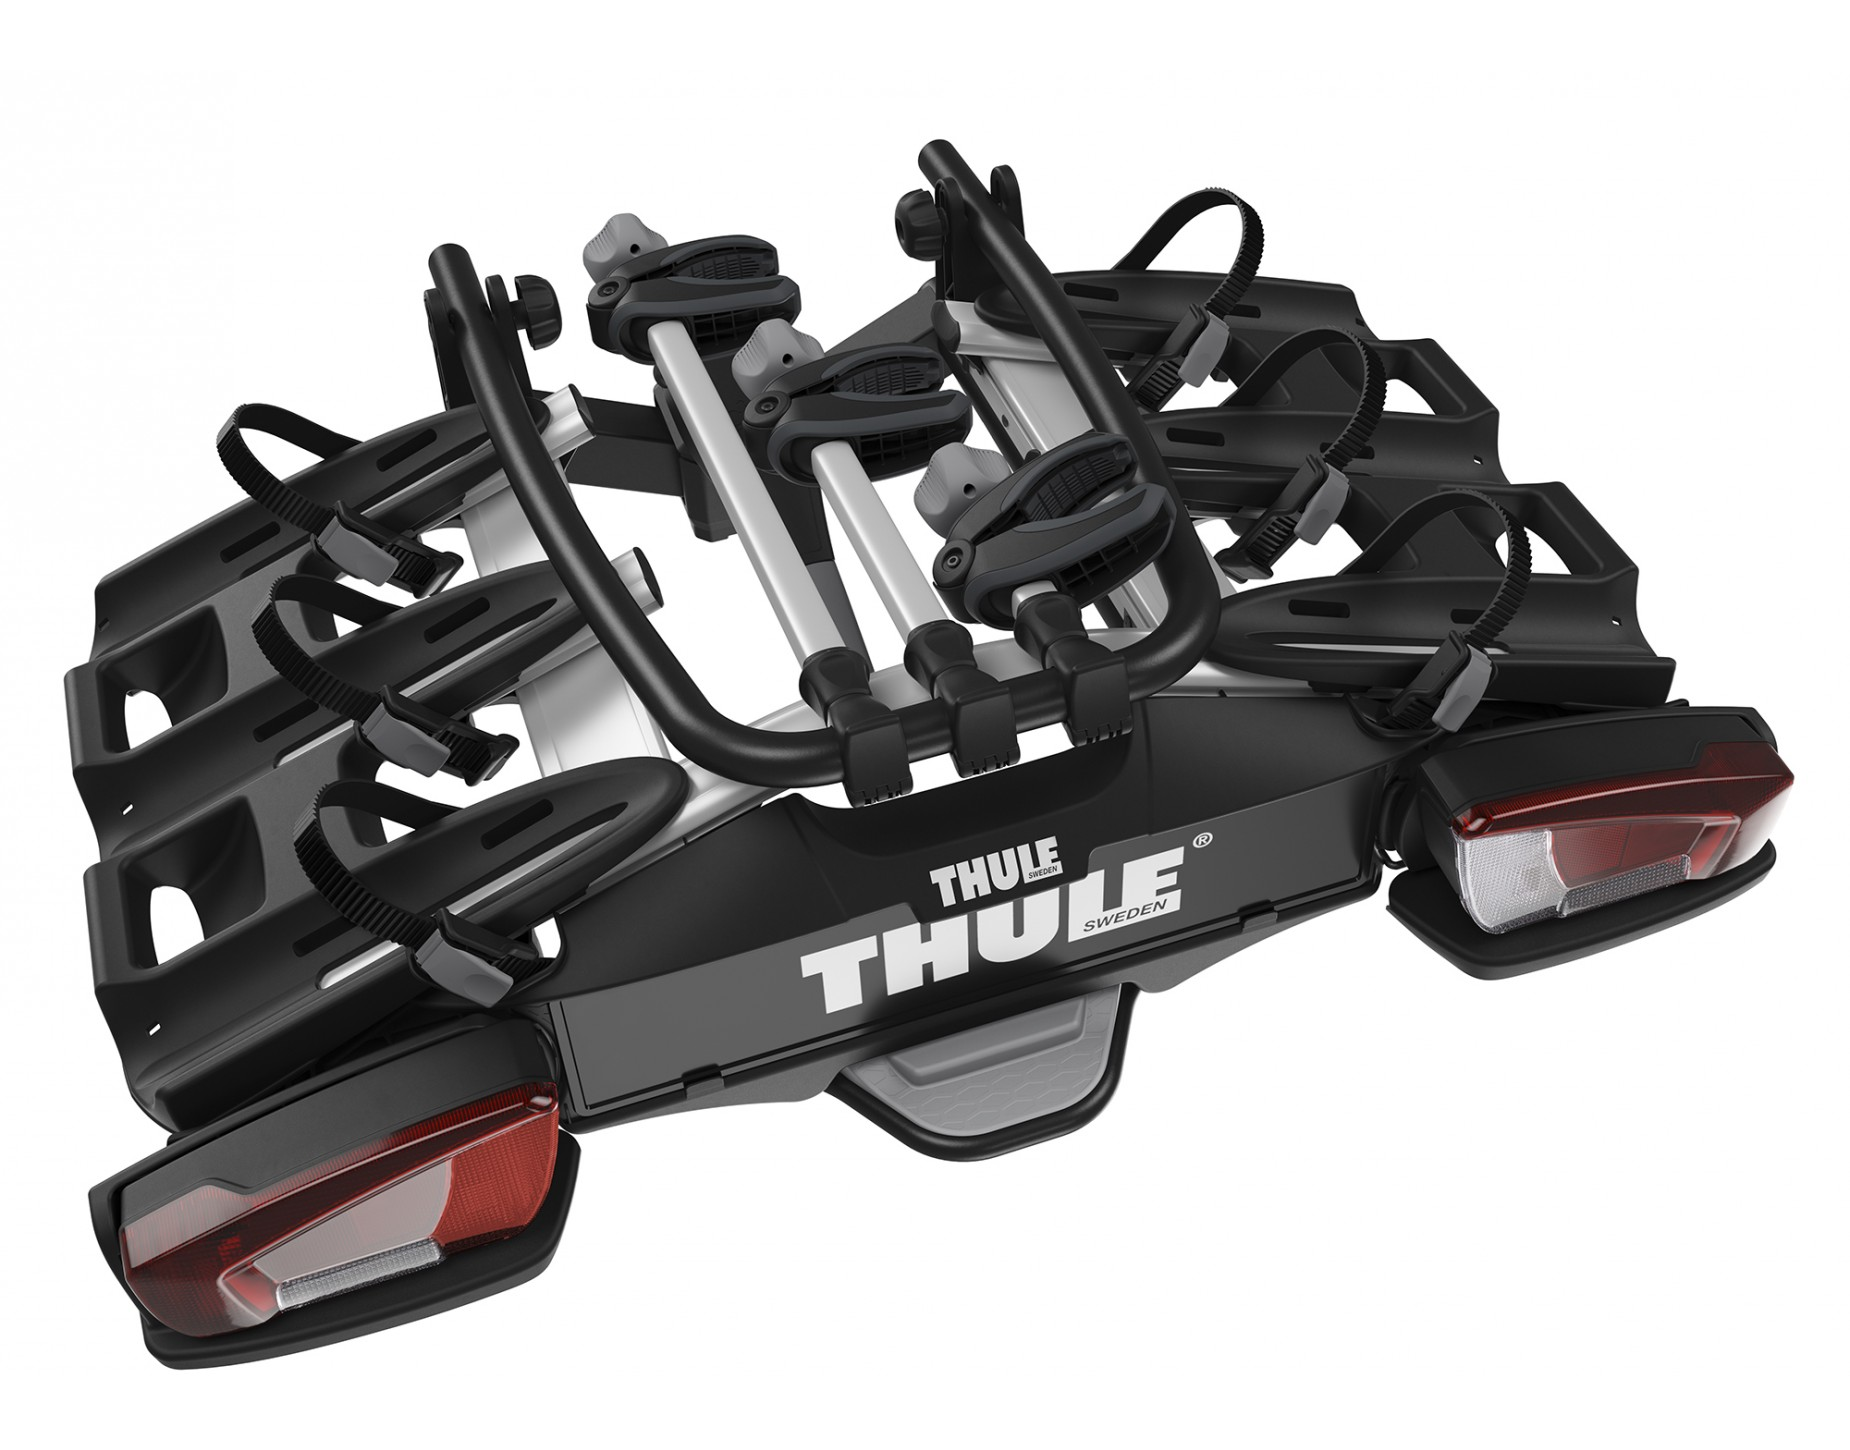 thule velocompact 926 bike rack everything you need. Black Bedroom Furniture Sets. Home Design Ideas